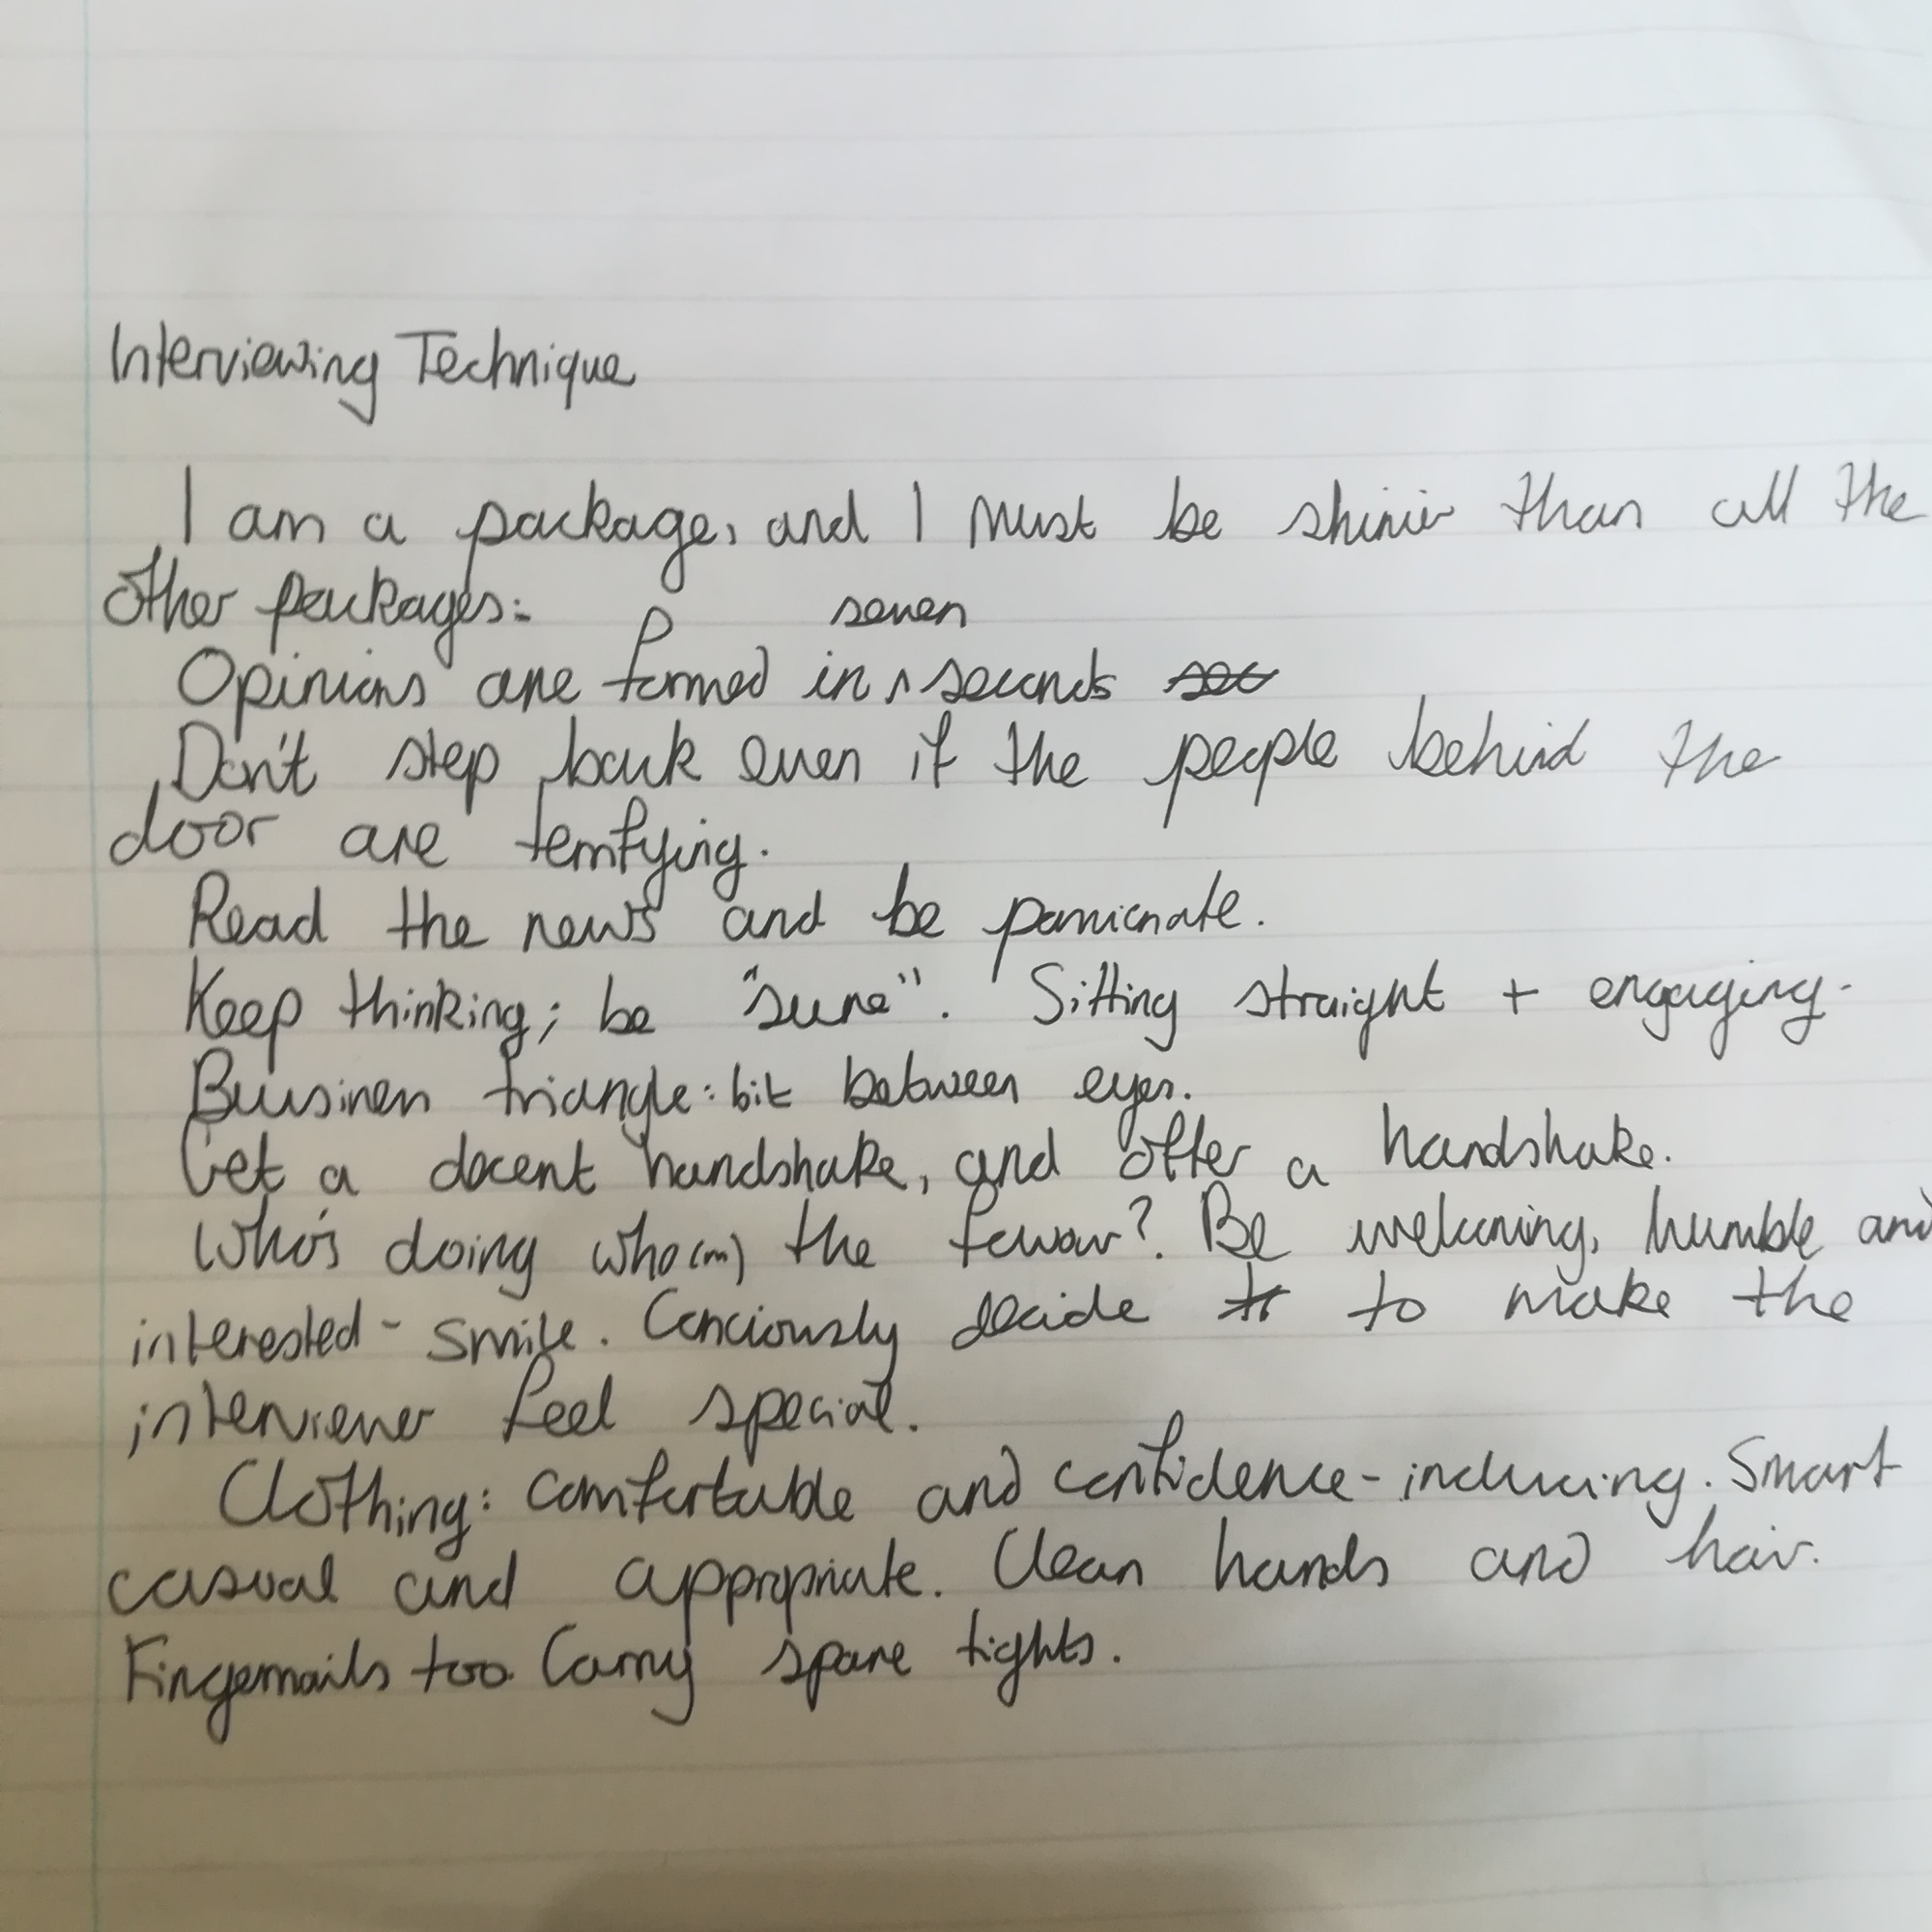 handwritten paper about interview technique, most of which is terrible advice